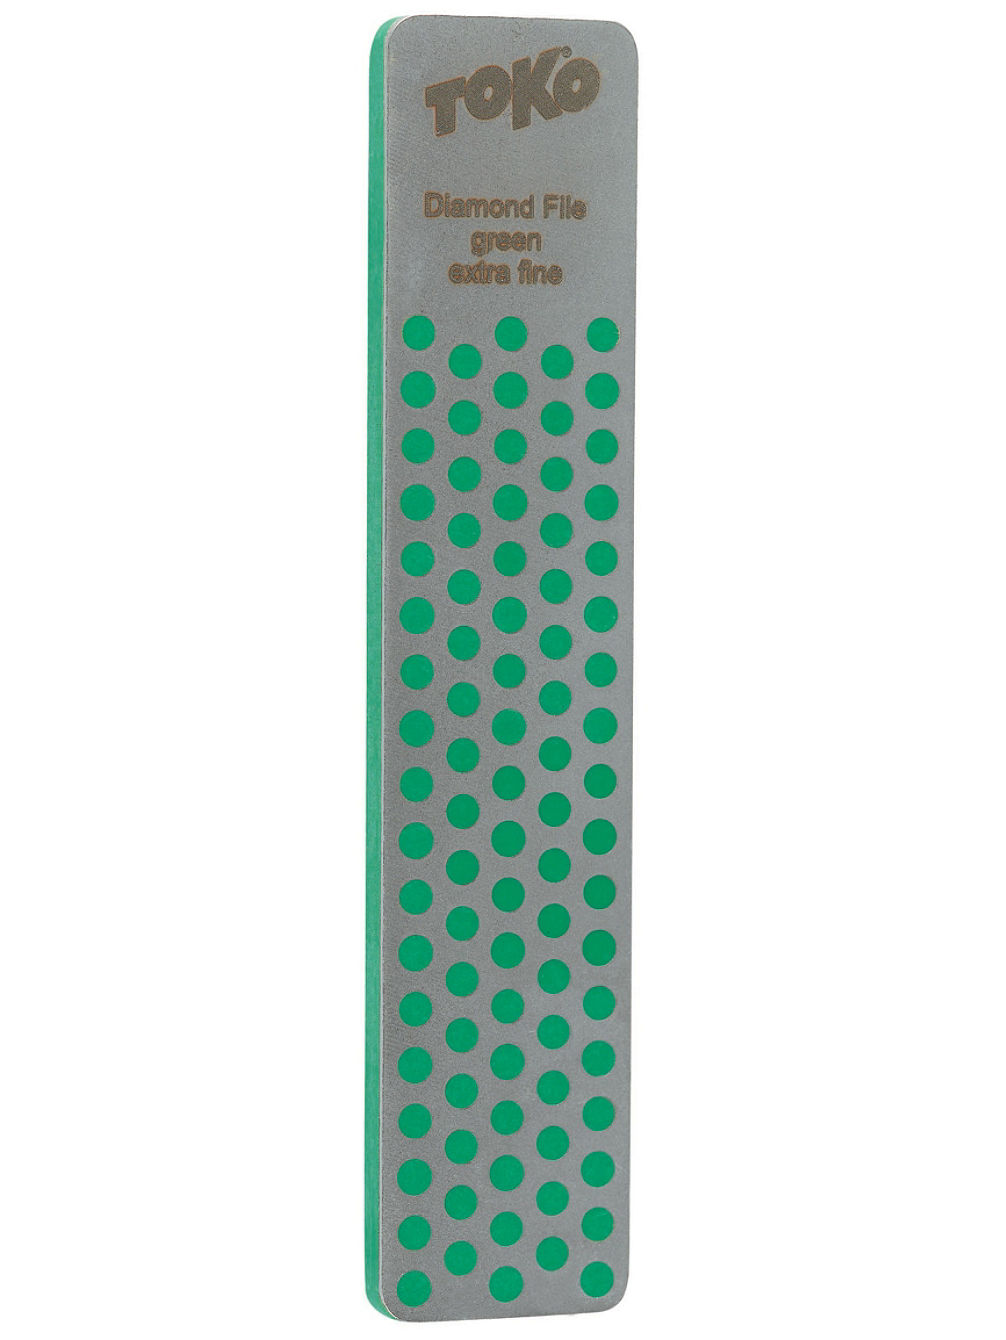 DMT Diamond File green - extra fine